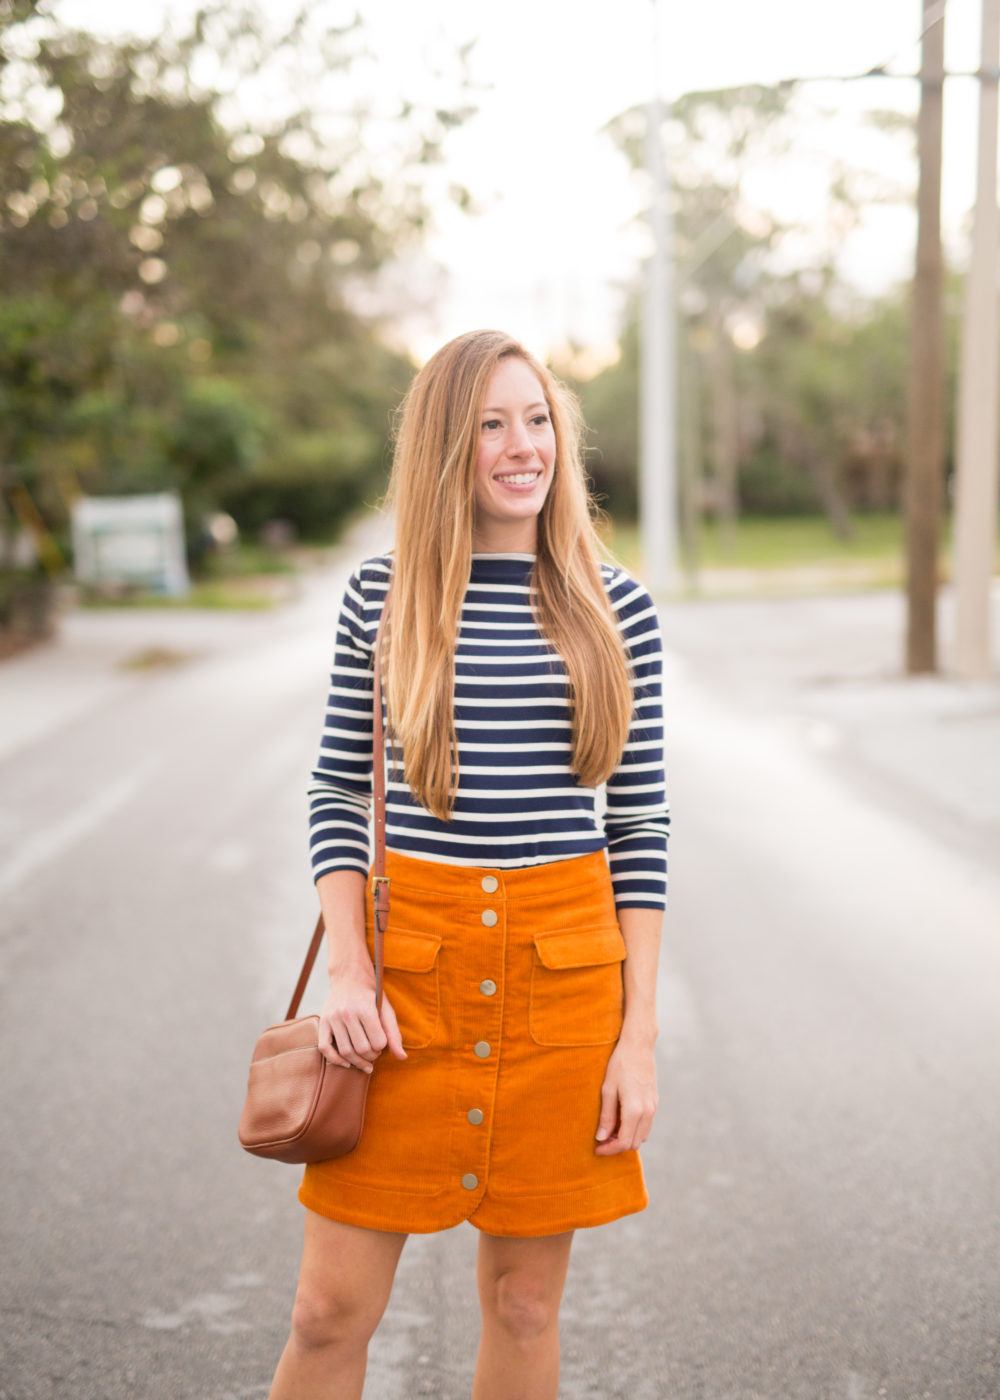 4 Must Have Fall Wardrobe Staples - Striped Shirt, Corduroy Skirt, Ankle Booties and Leather Bag | Sunshine Style